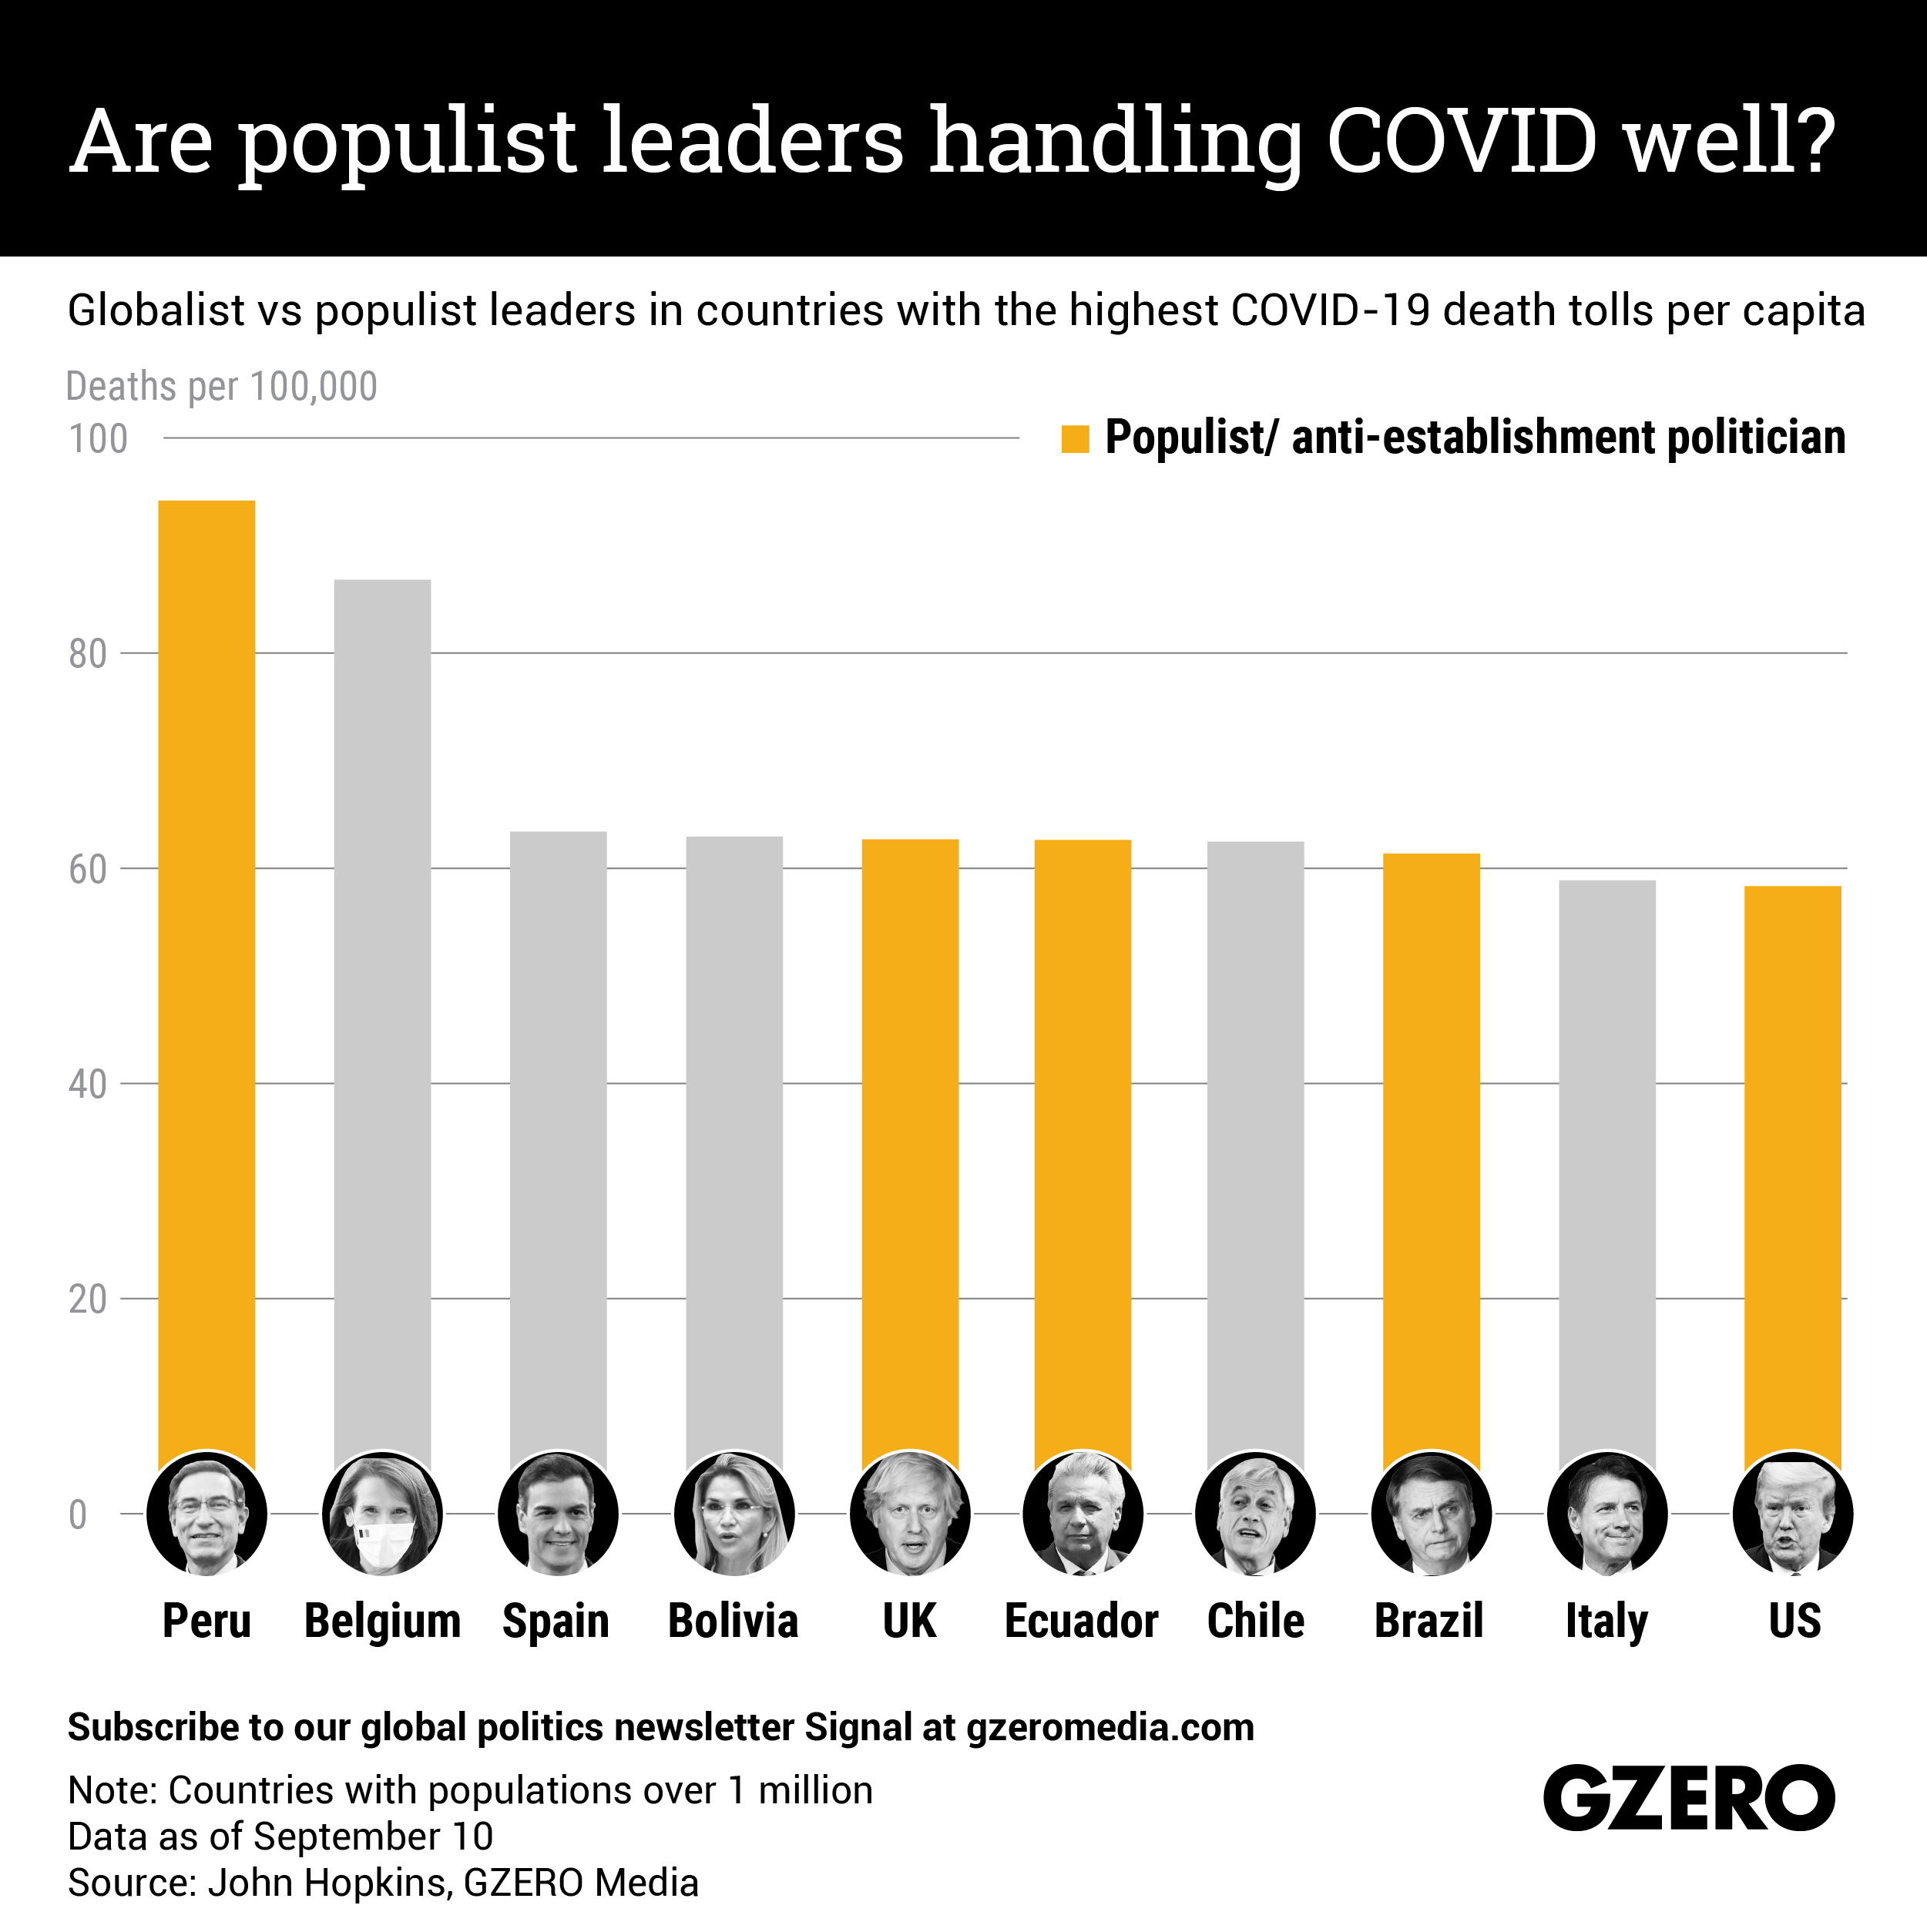 The Graphic Truth: Are populist leaders handling COVID well?